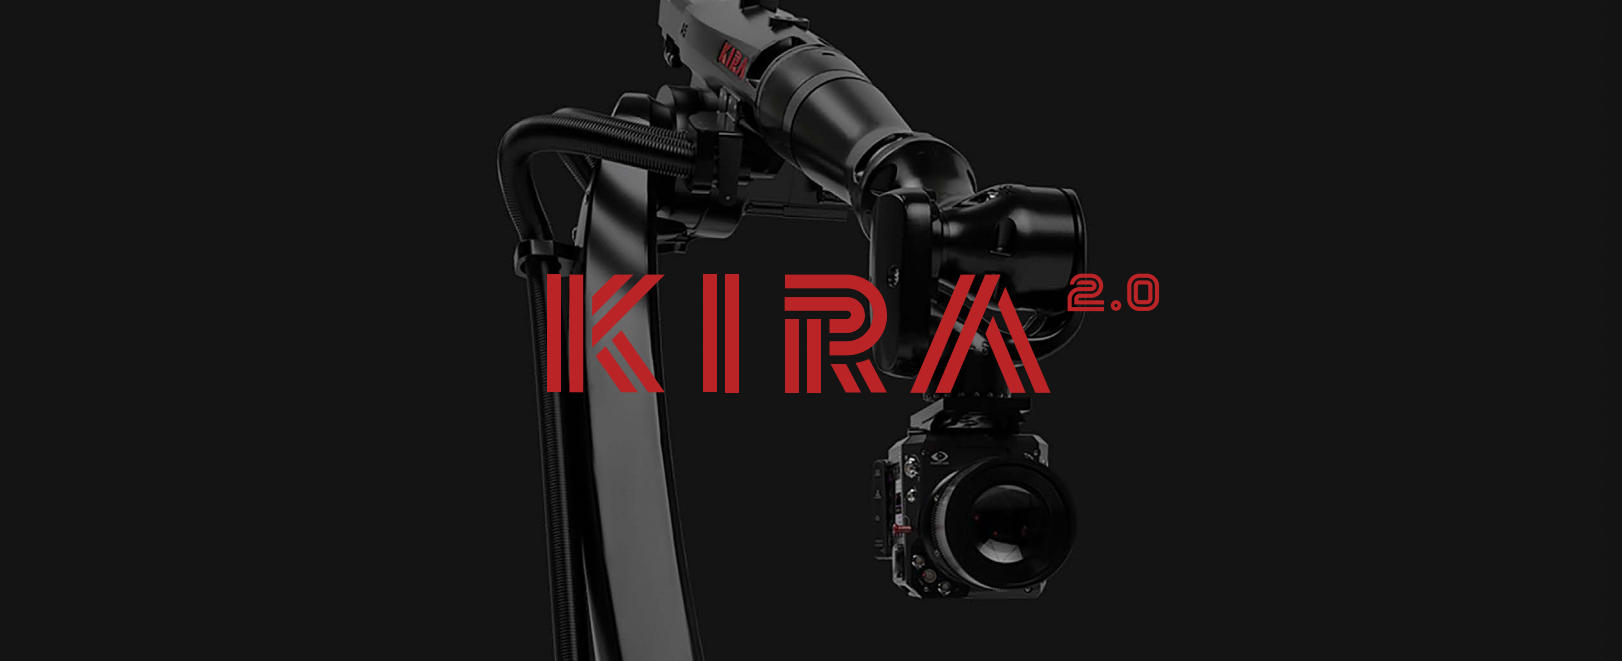 You Can Now Buy a Robotic Camera Arm That Plugs into an Outlet — KIRA